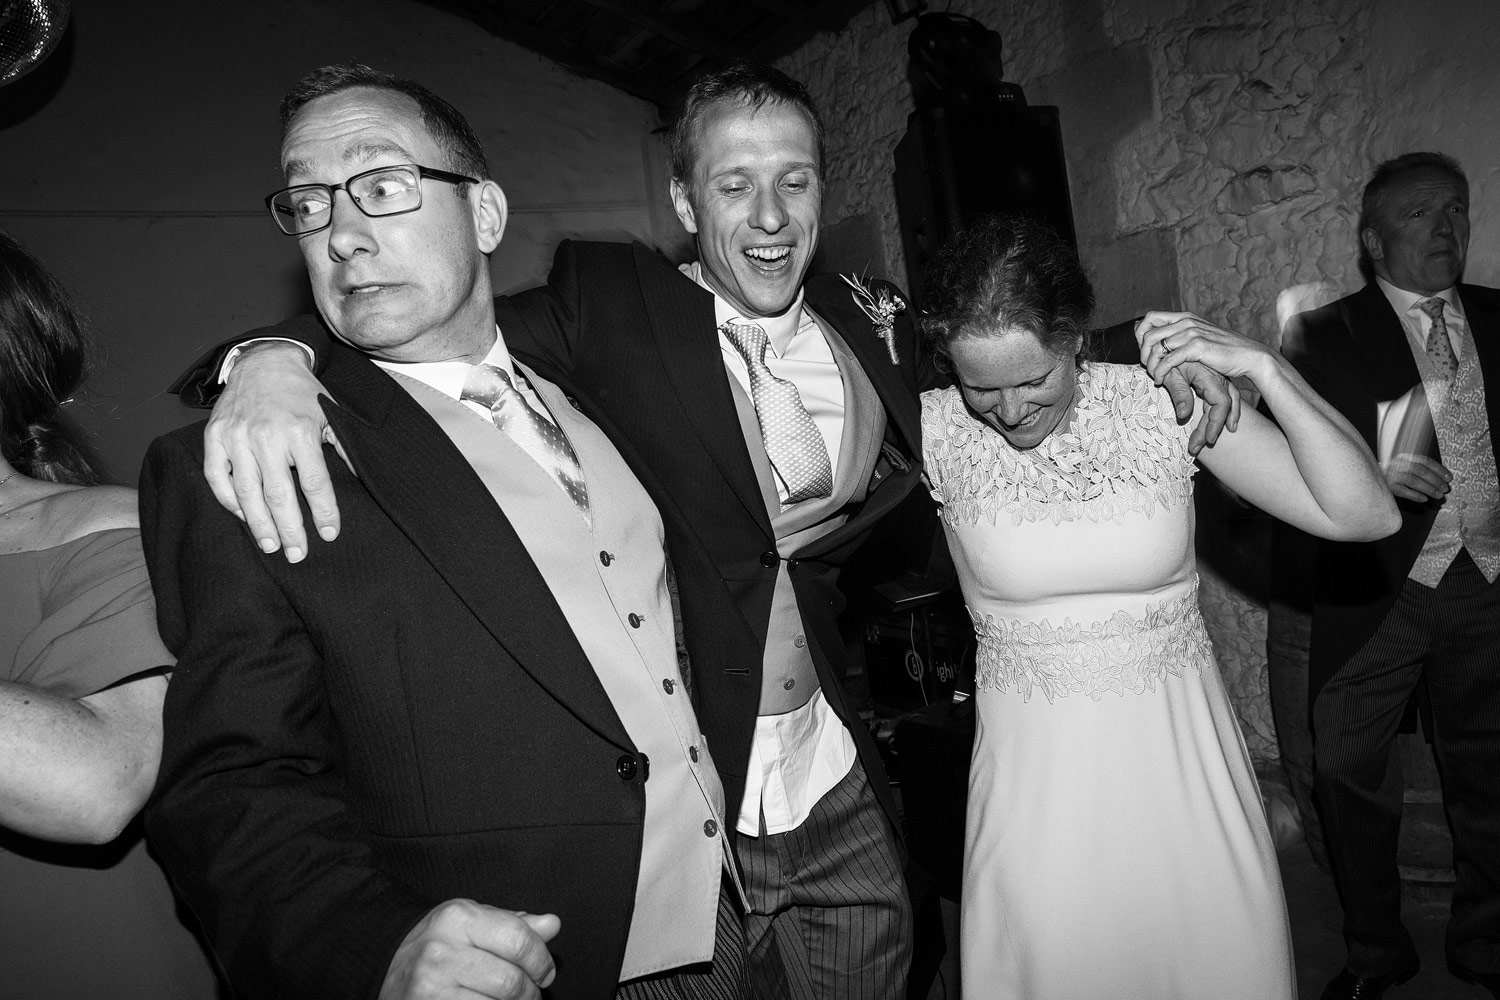 Wedding guests having fun on the dancefloor at Chateau Rigaud in Bordeaux - French wedding photographer